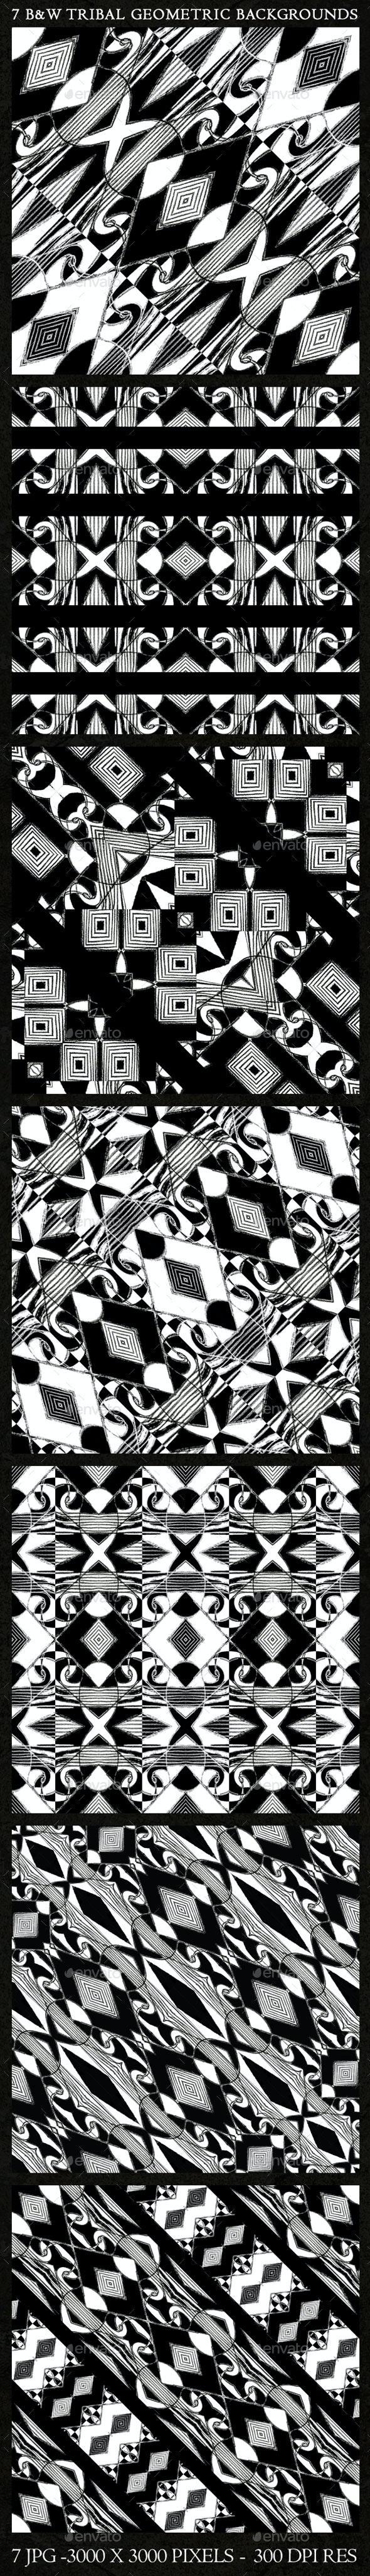 7 Black and White Tribal Geometric Backgrounds - Patterns Backgrounds